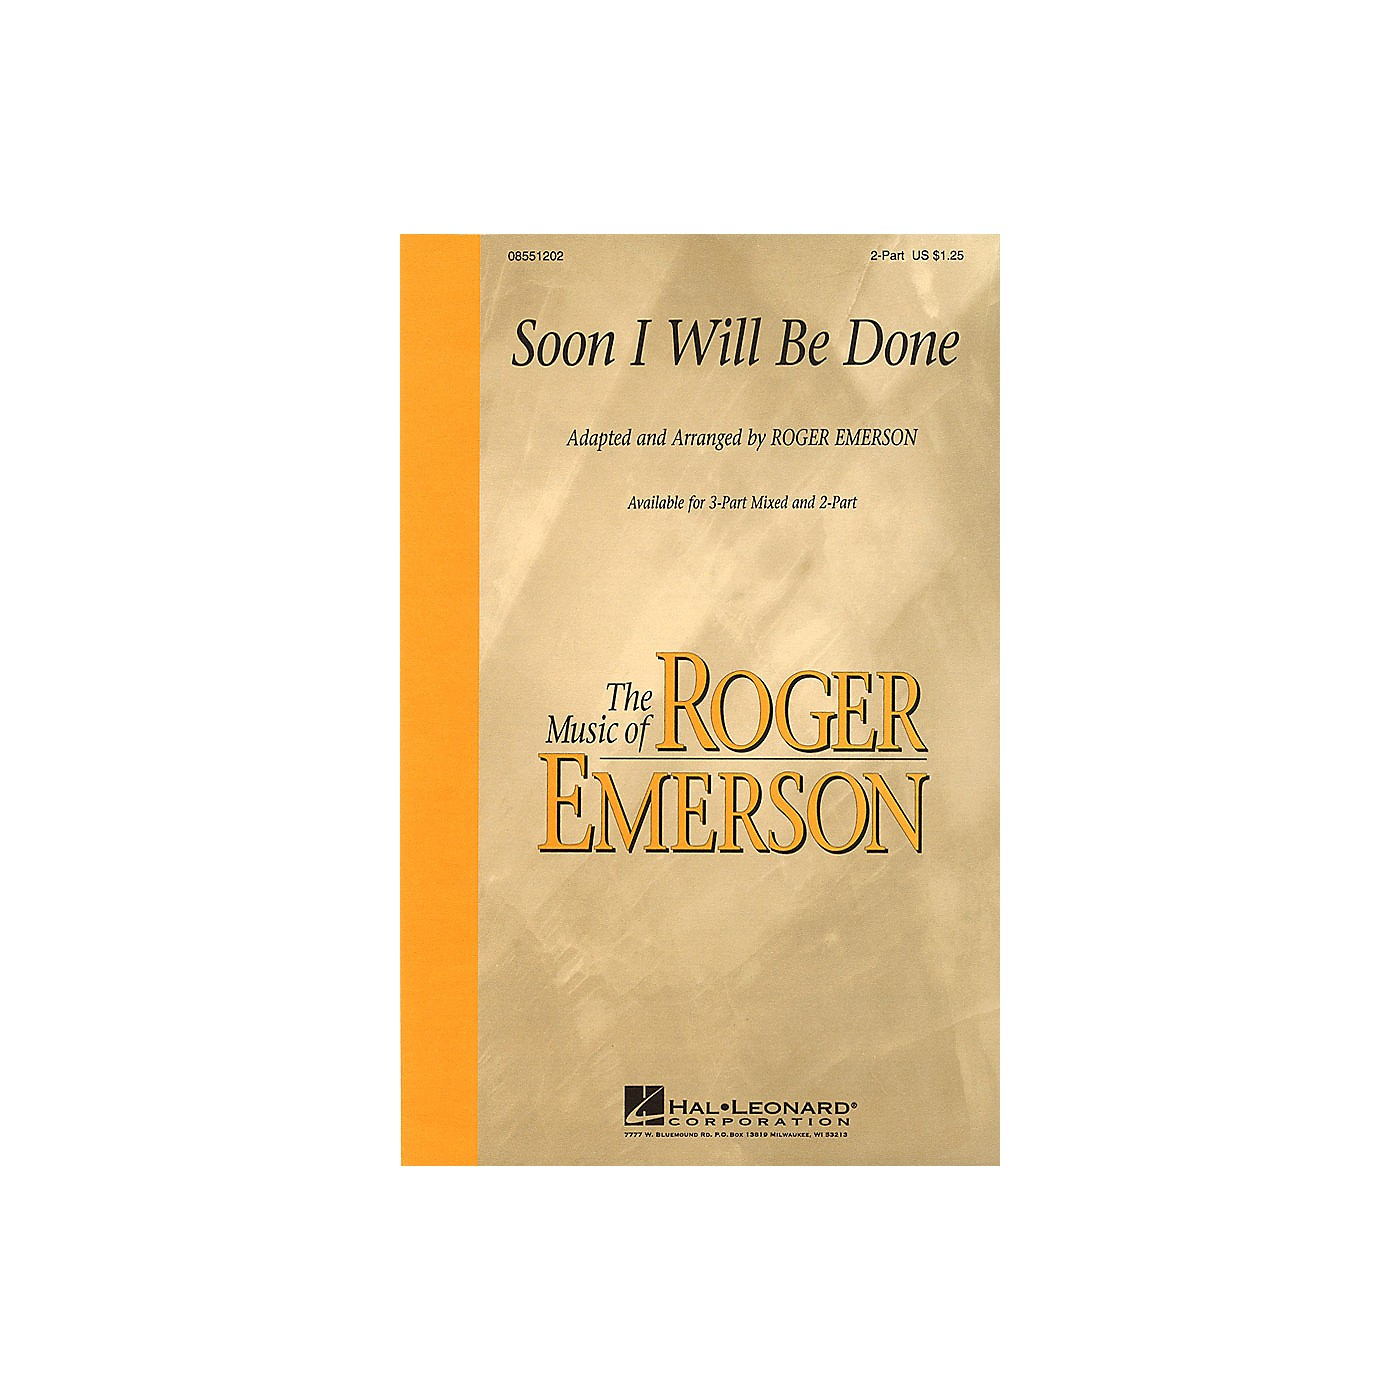 Hal Leonard Soon I Will Be Done 3-Part Mixed Arranged by Roger Emerson thumbnail